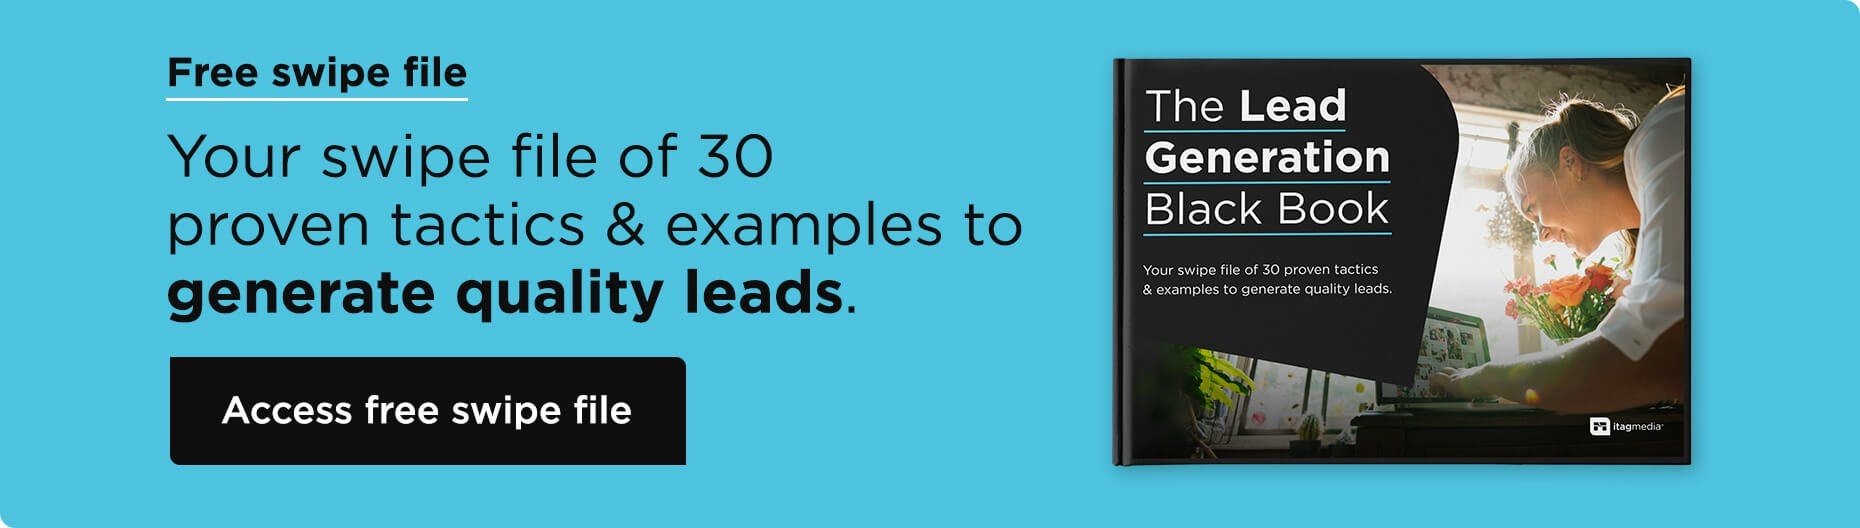 The Lead Generation Black Book - Desktop Blog CTA